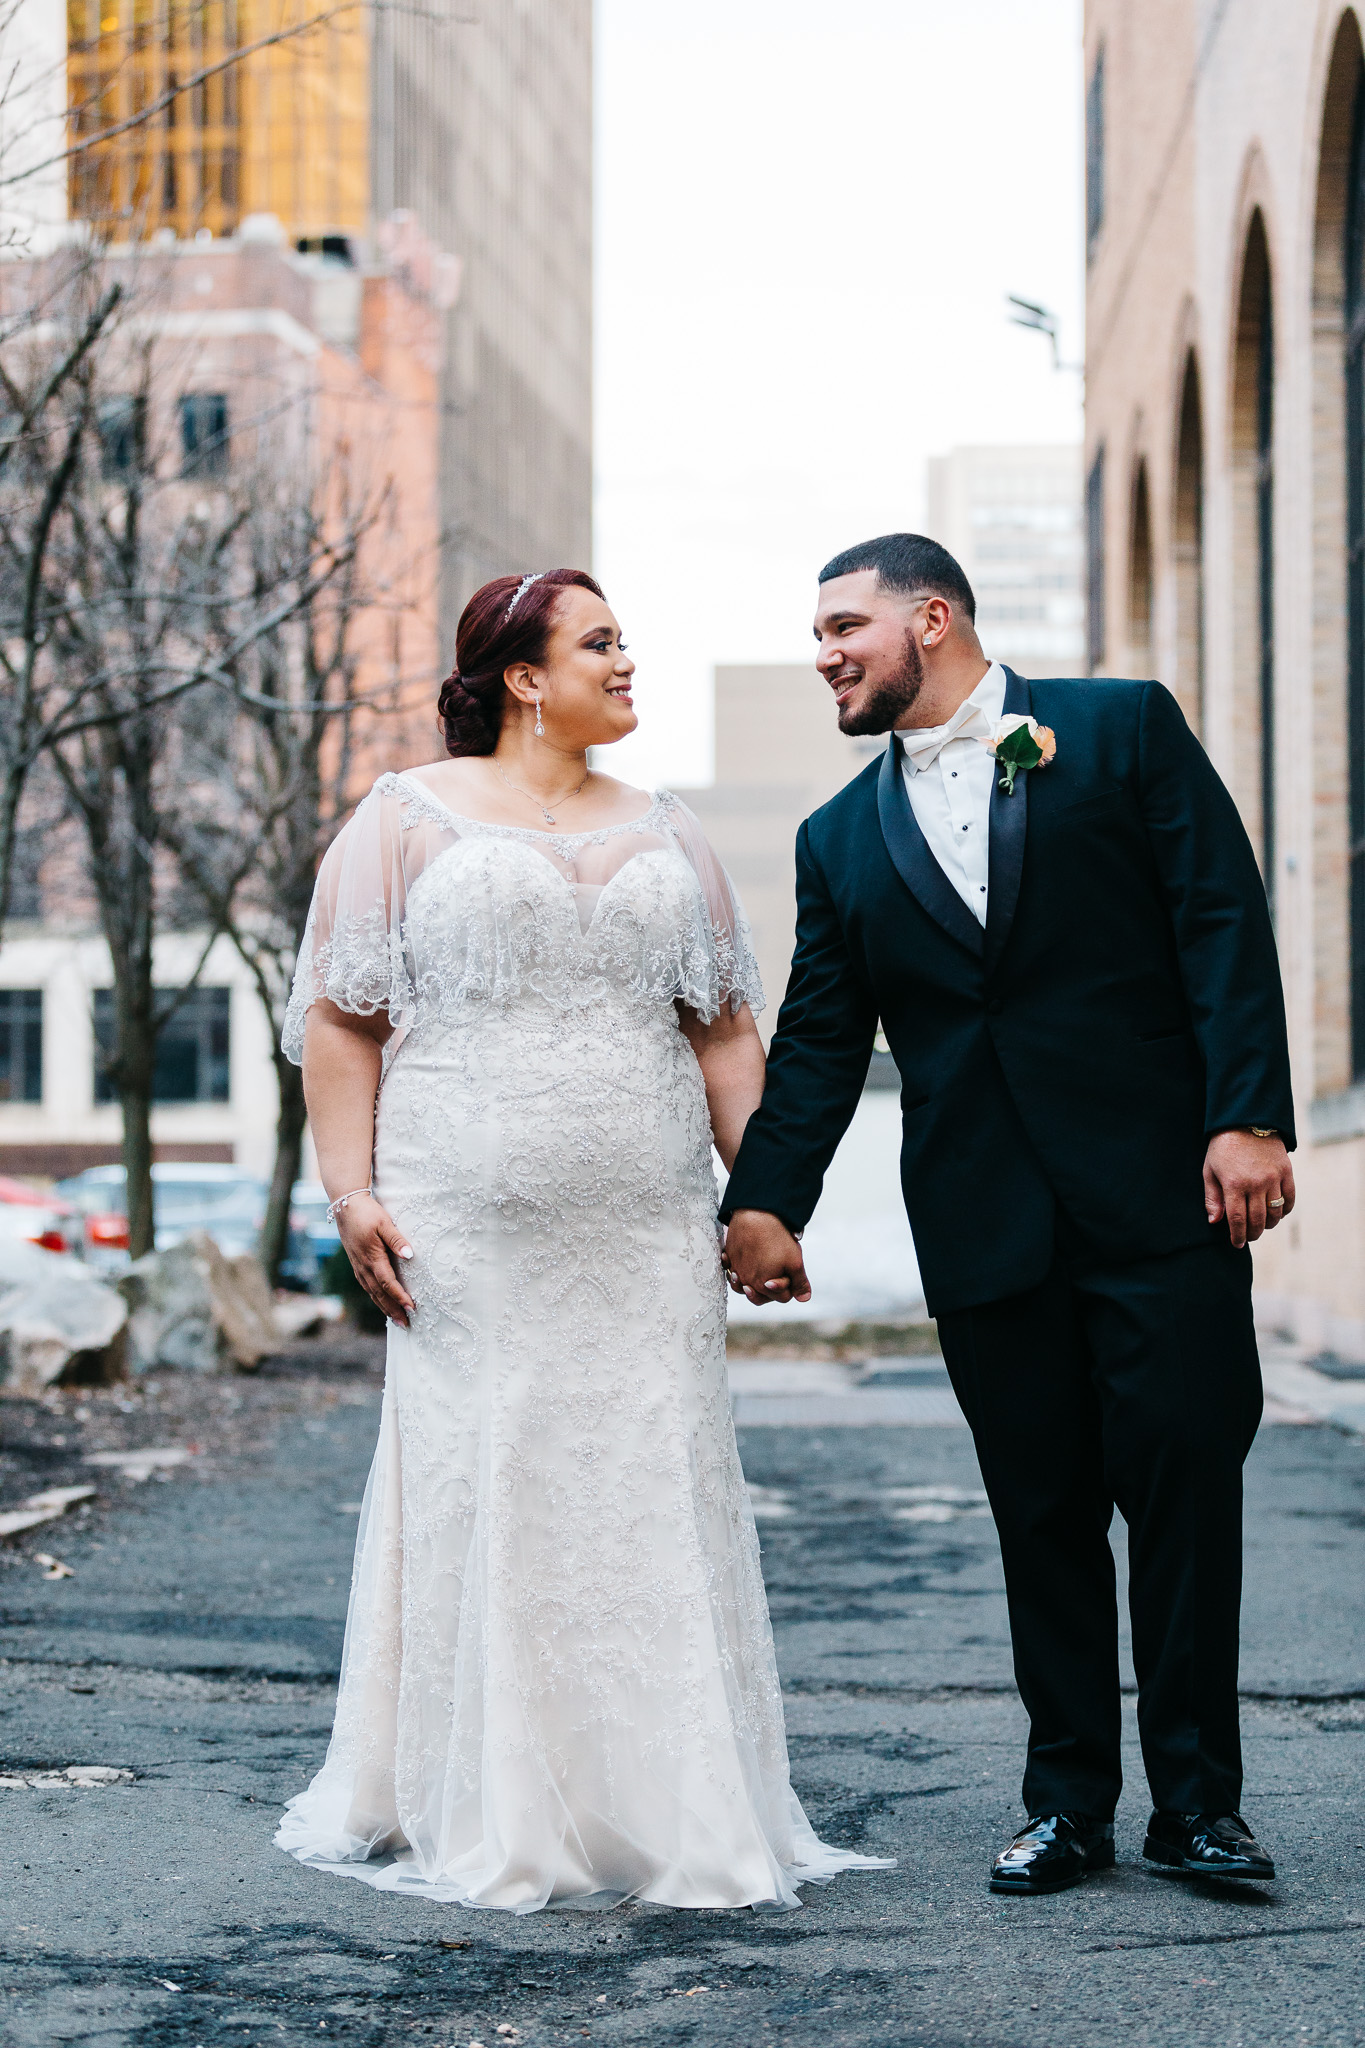 Couple standing in the driveway at the society room of hartford ct after their wedding ceremony posing for a portrait with the buildings in the background.